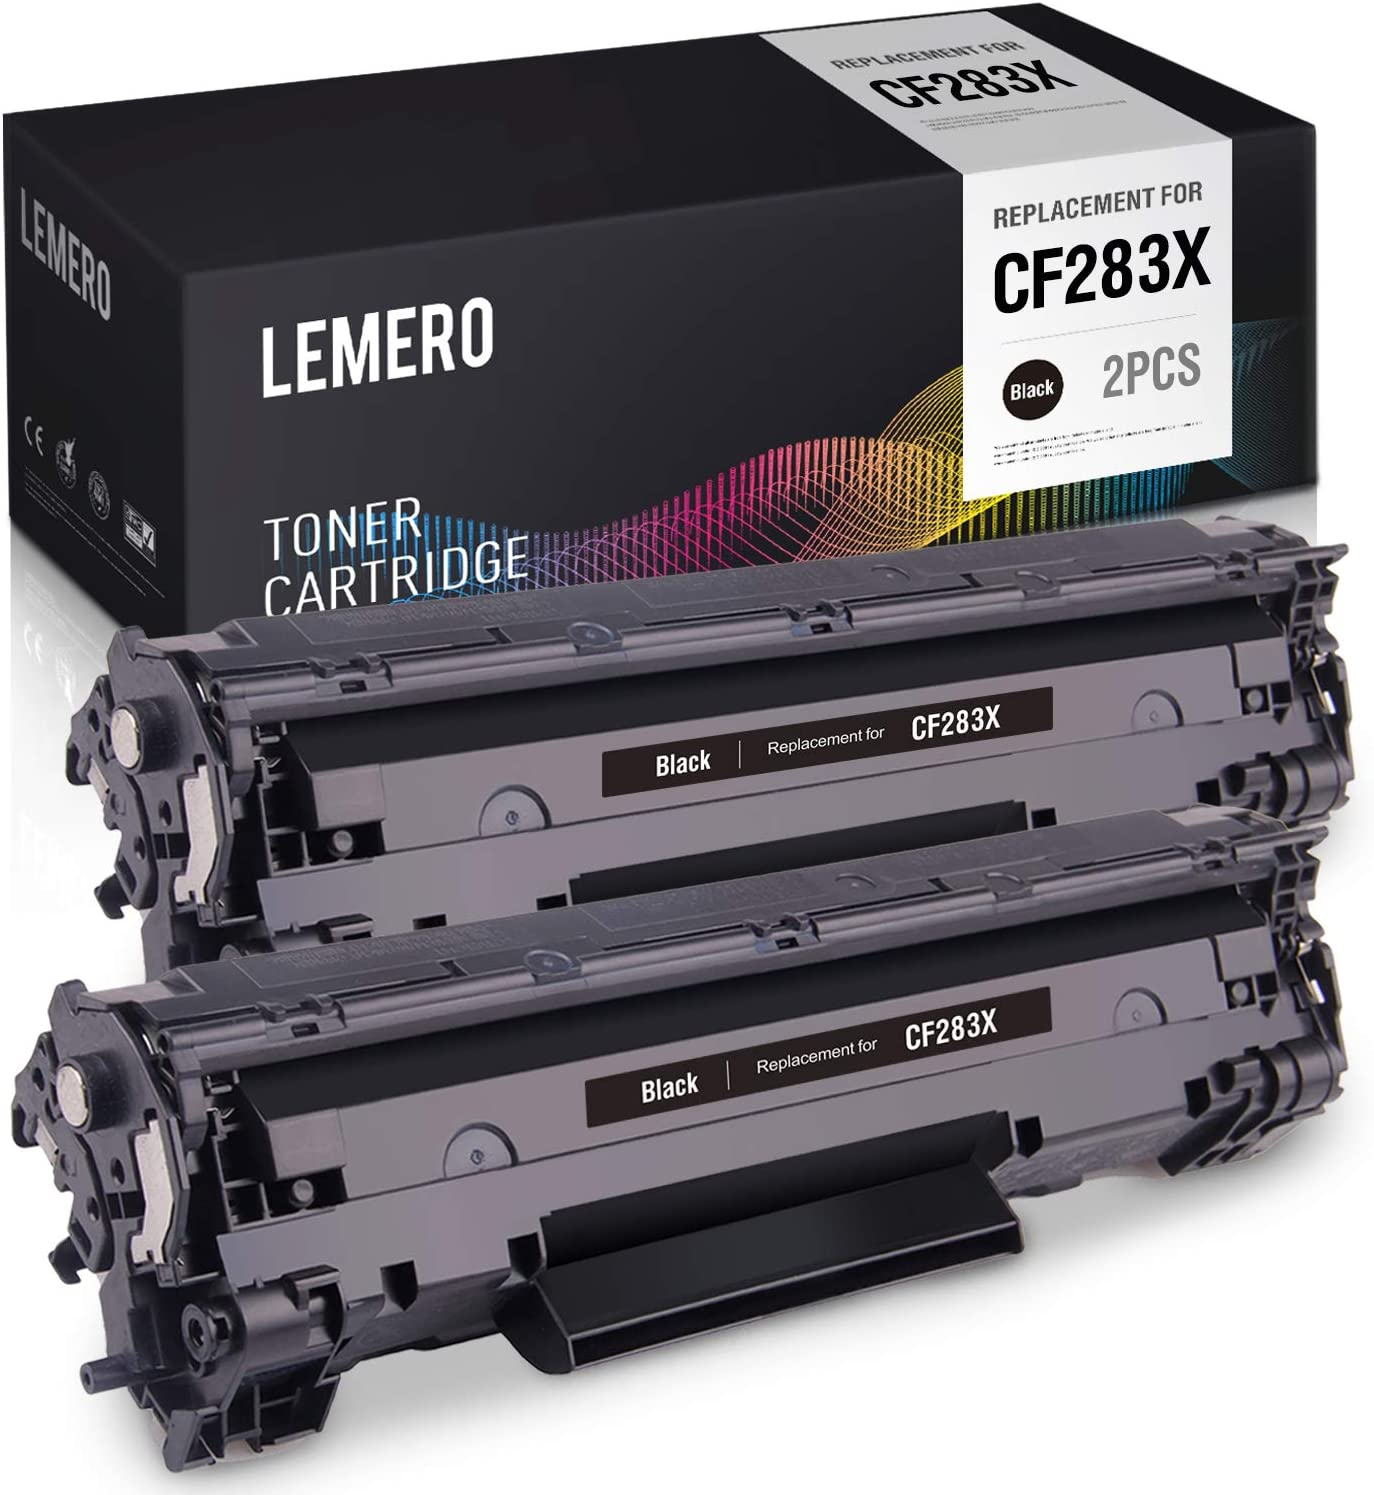 LEMERO Compatible Toner Cartridge Replacement for HP 83A CF283A 83X CF283X High Yield - for HP Laserjet Pro M201dw MFP M225dw MFP M225dn MFP M225nw (Black, 2 Pack)